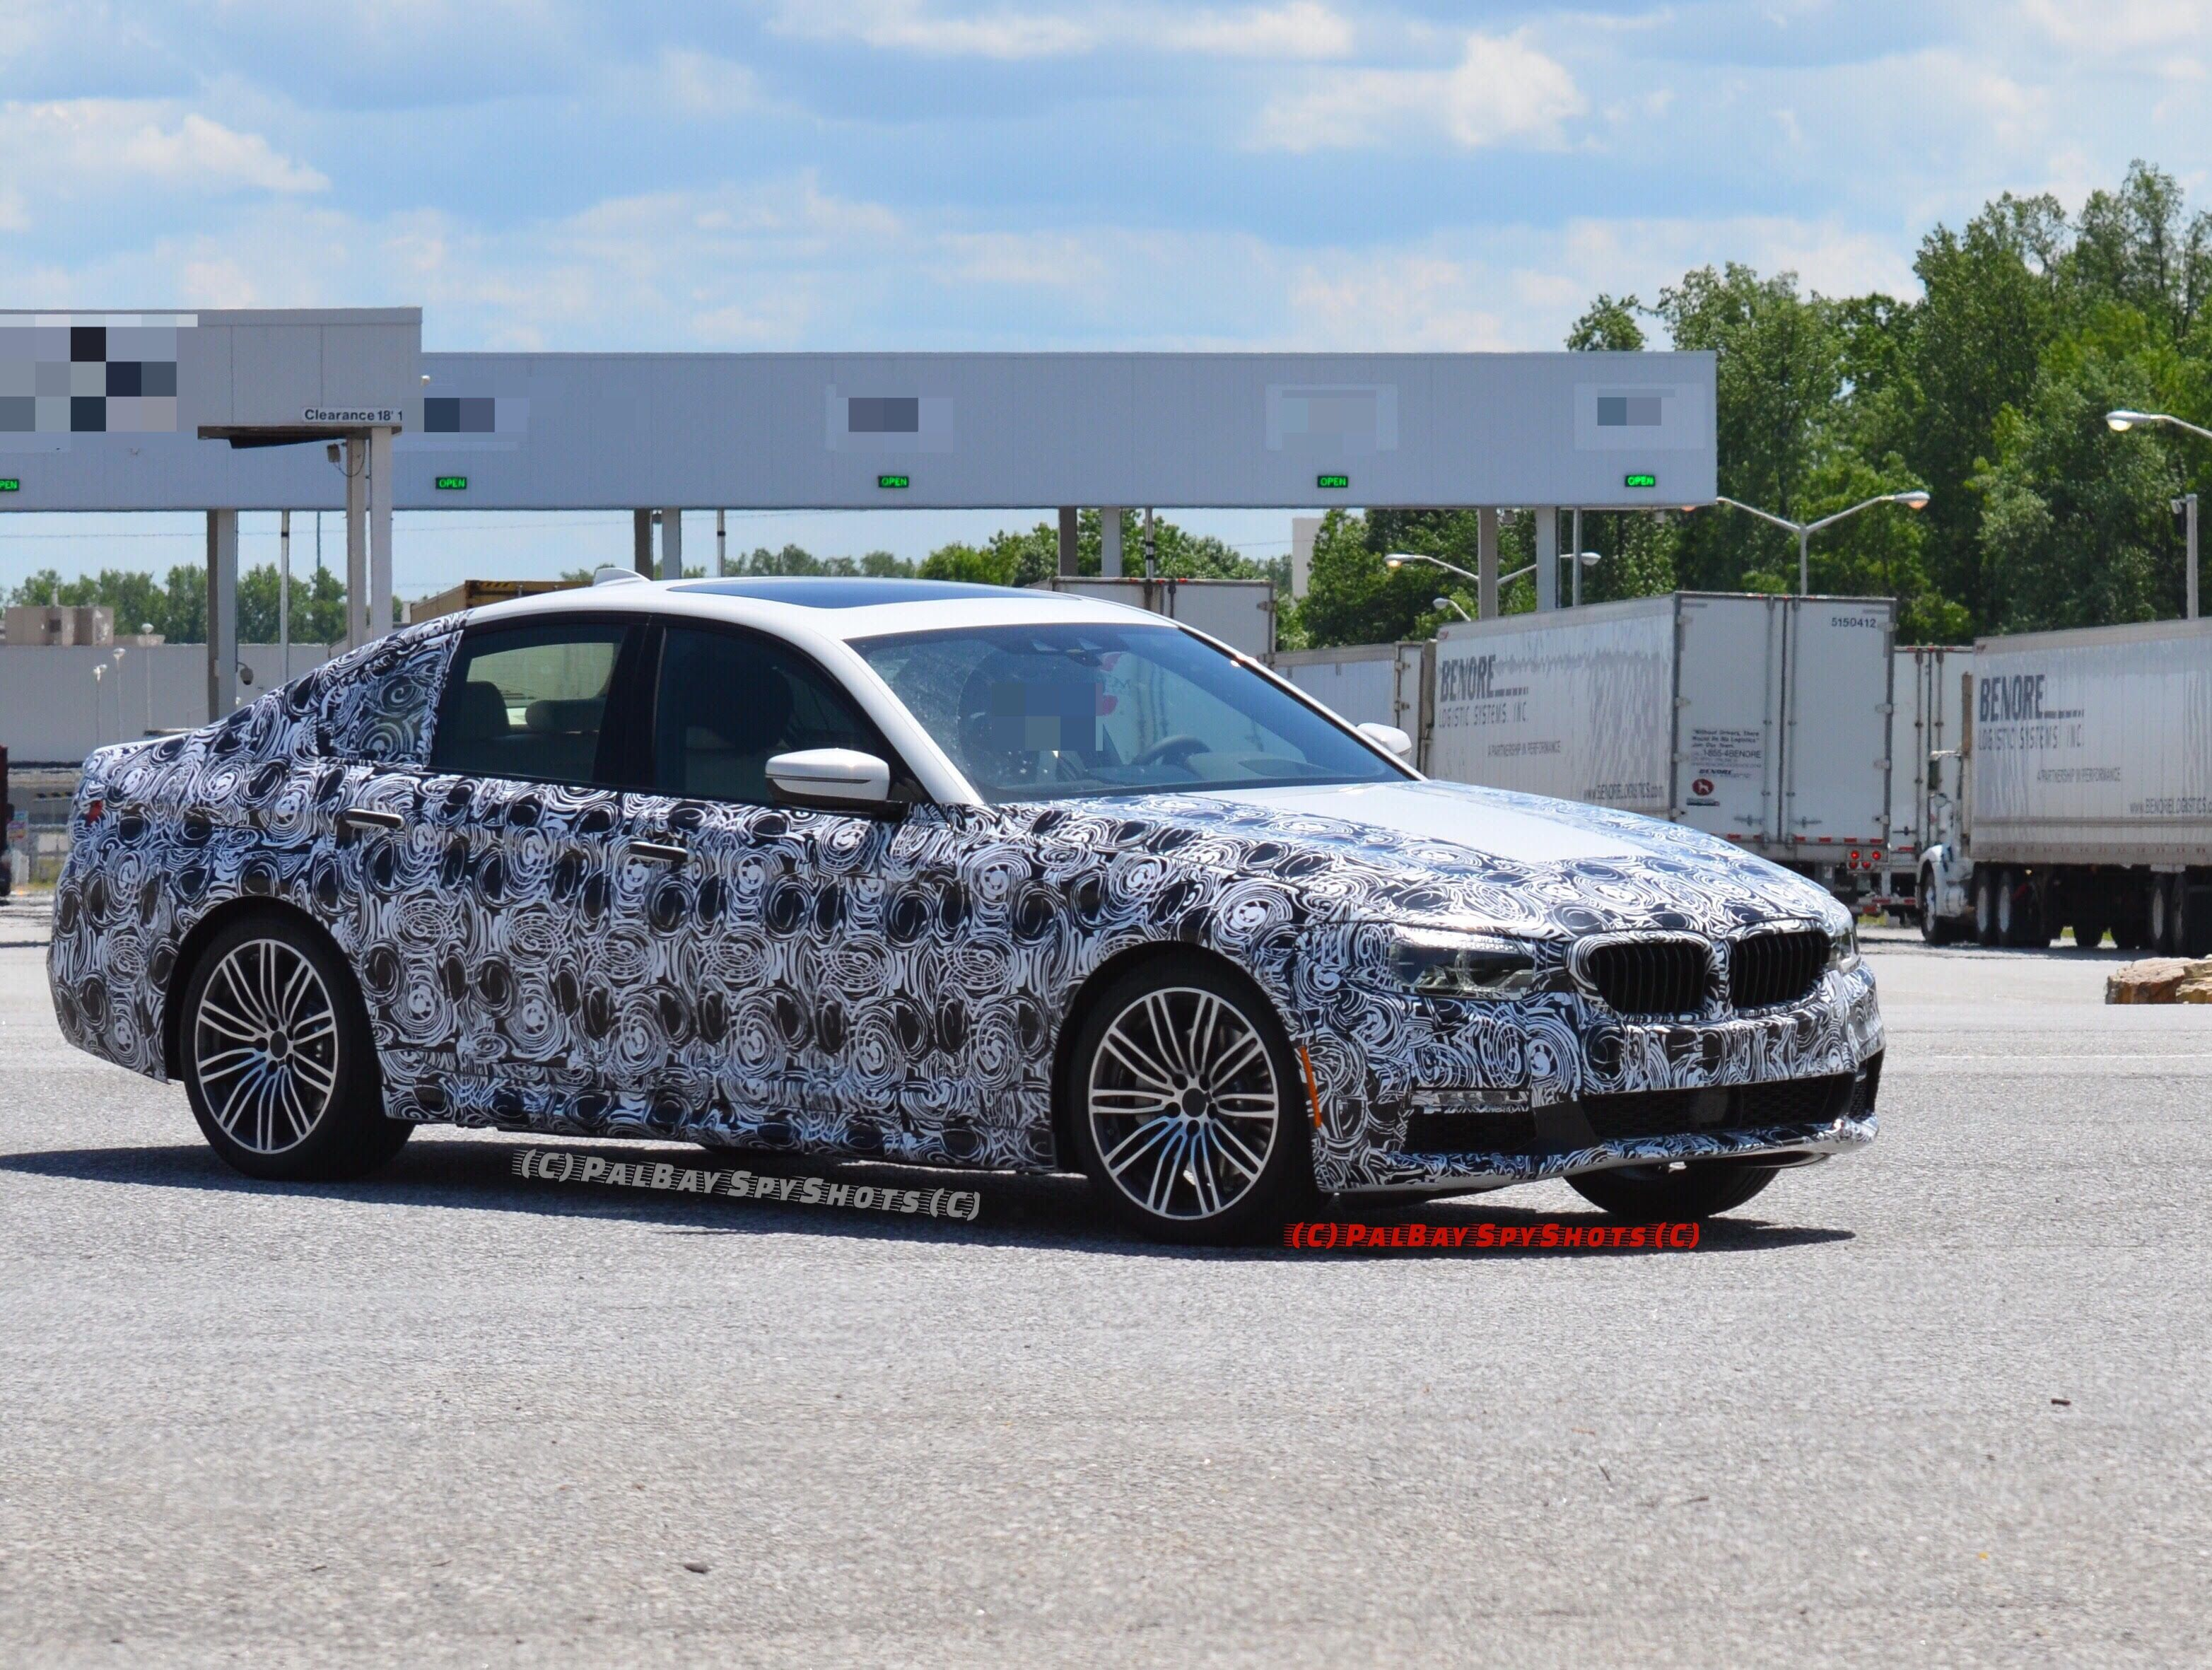 2017 Bmw G30 5 Series M Sport Package Spotted In South Carolina